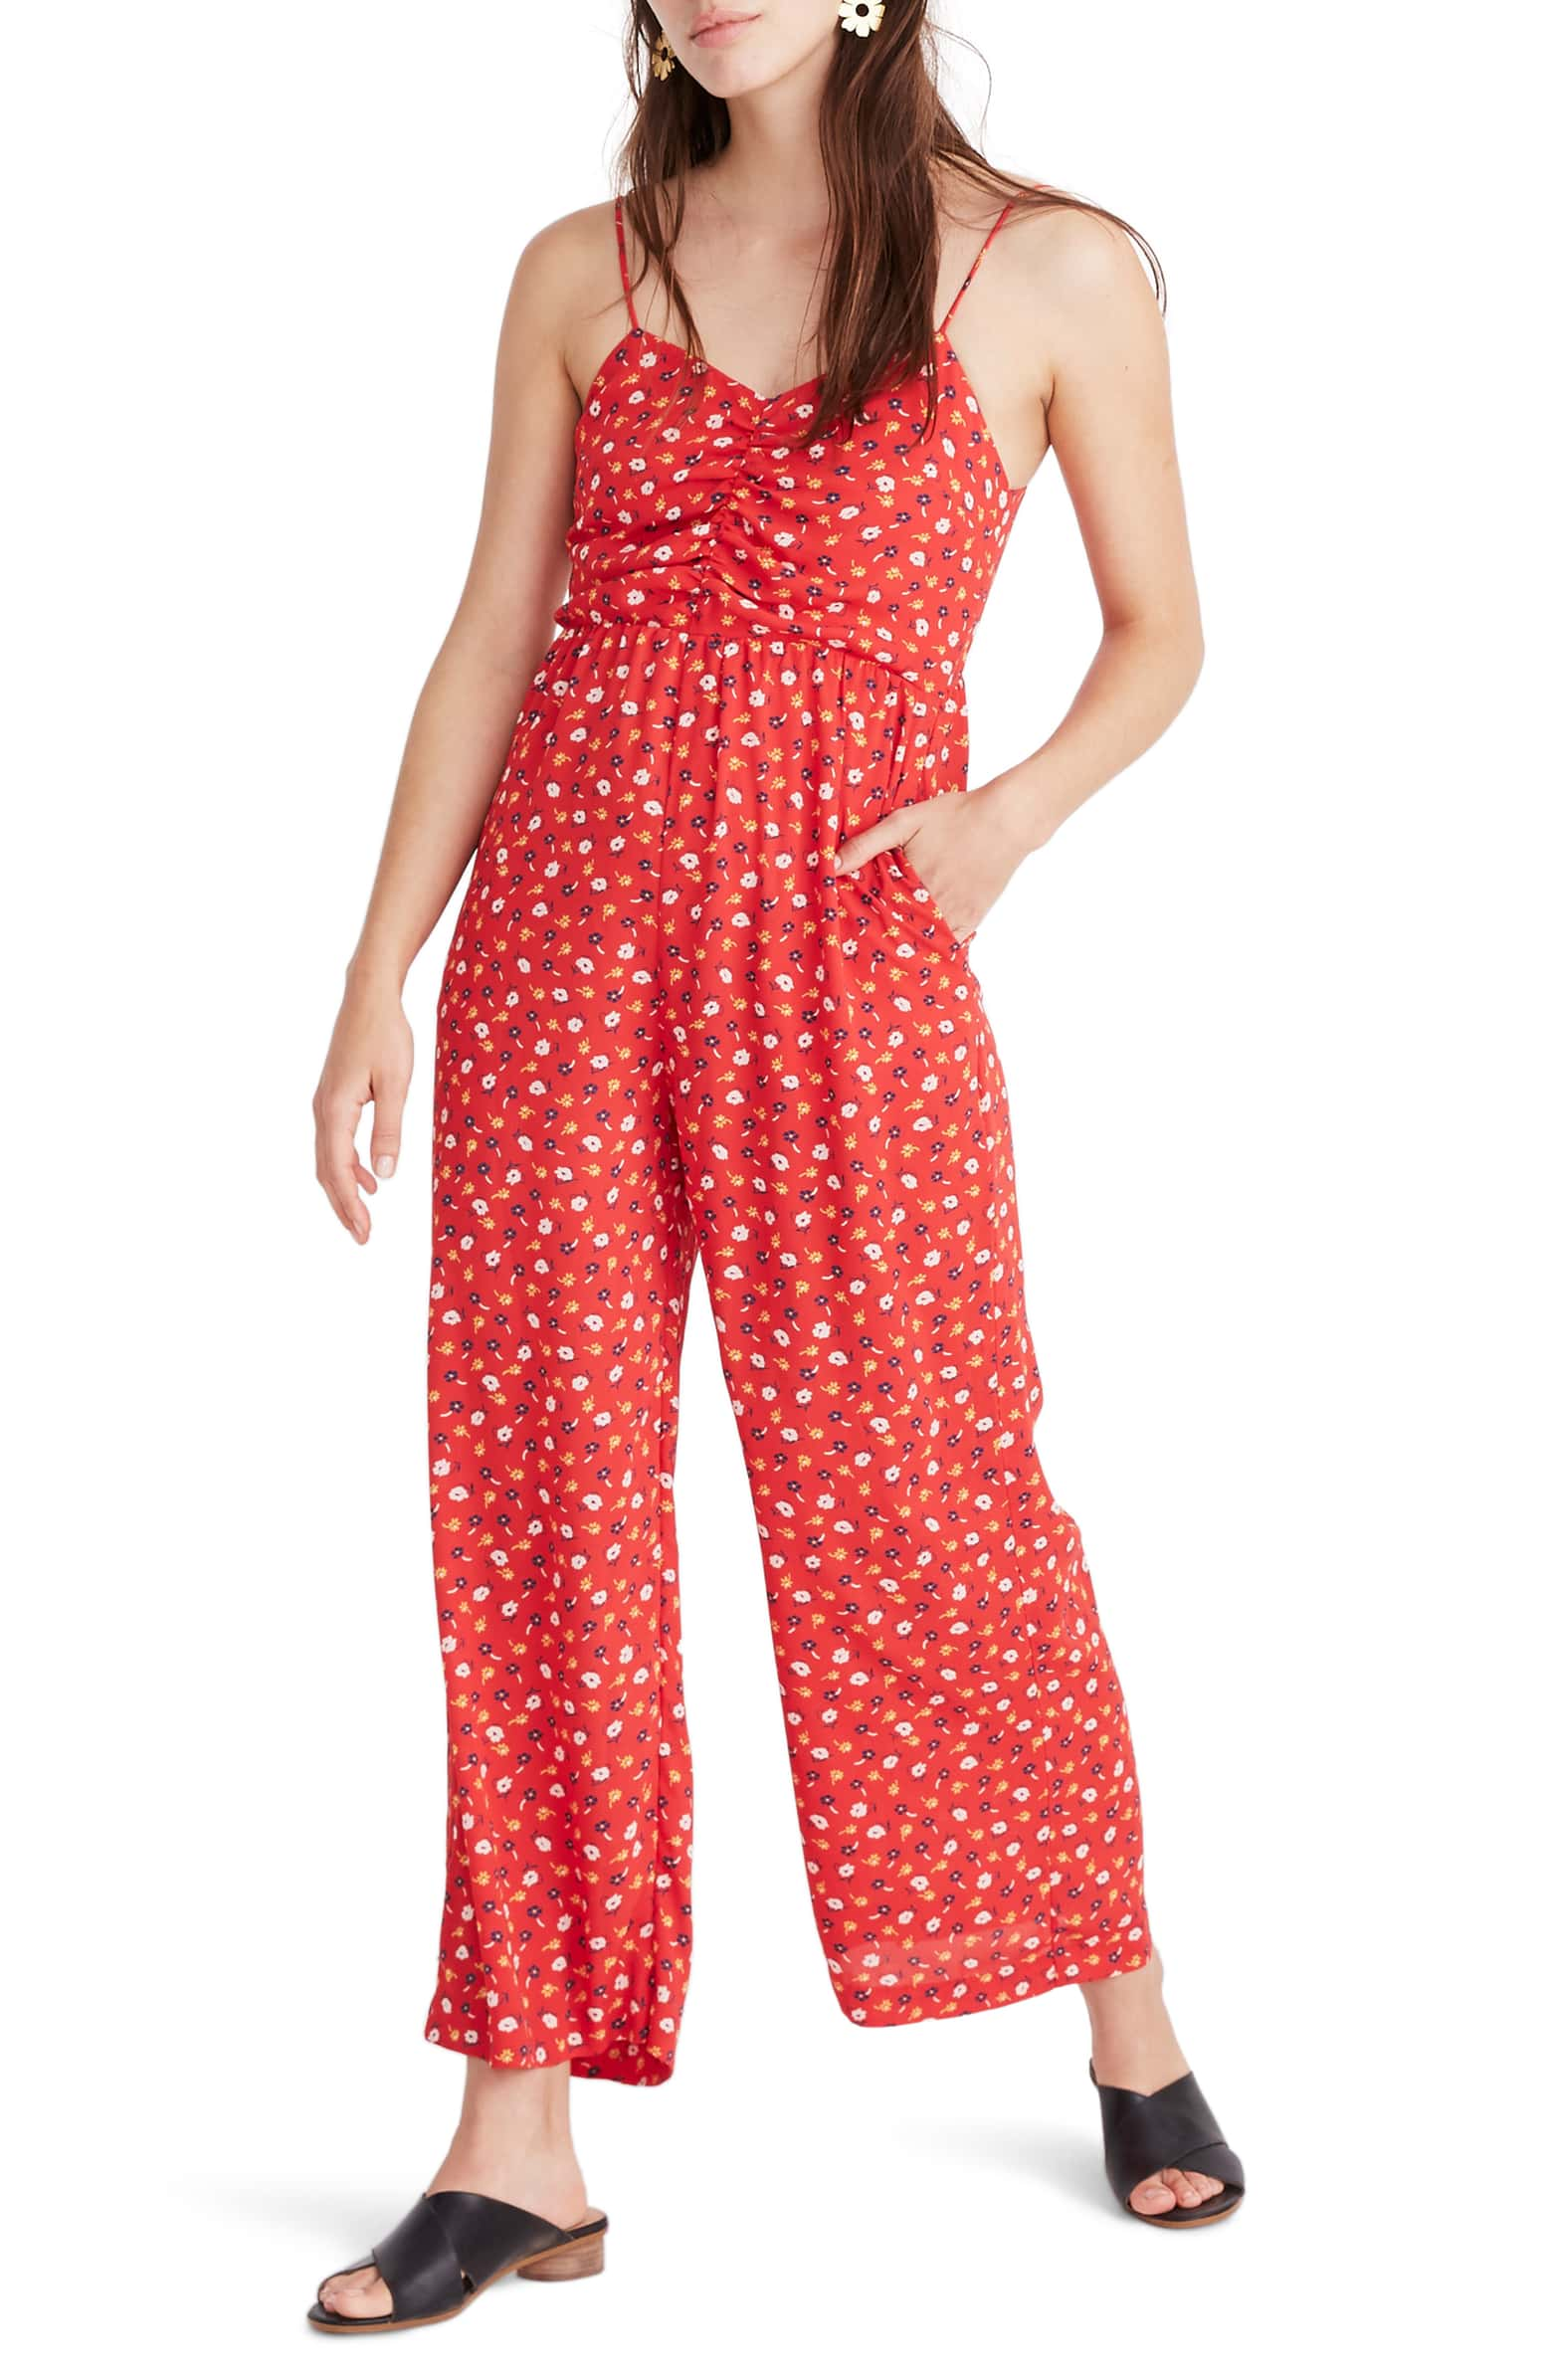 Ruched jumpsuit $99.99 (30% off)